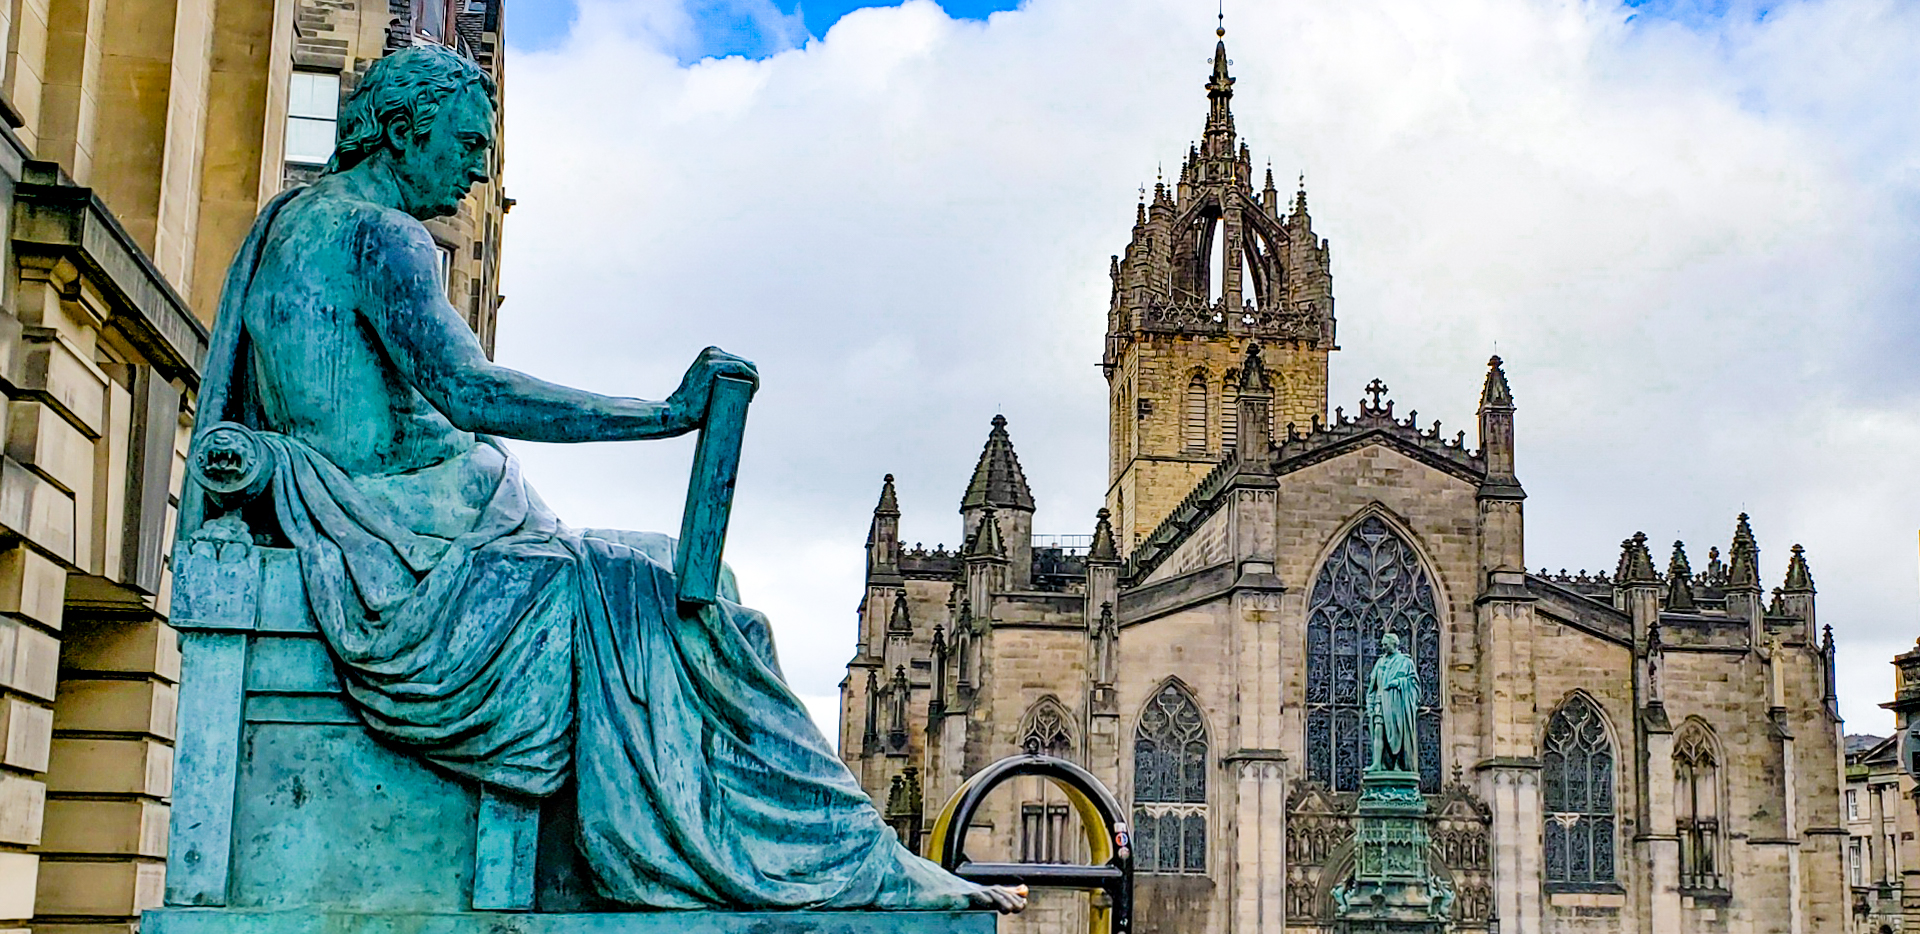 David Hume Memorial in front of St. Giles Cathedral